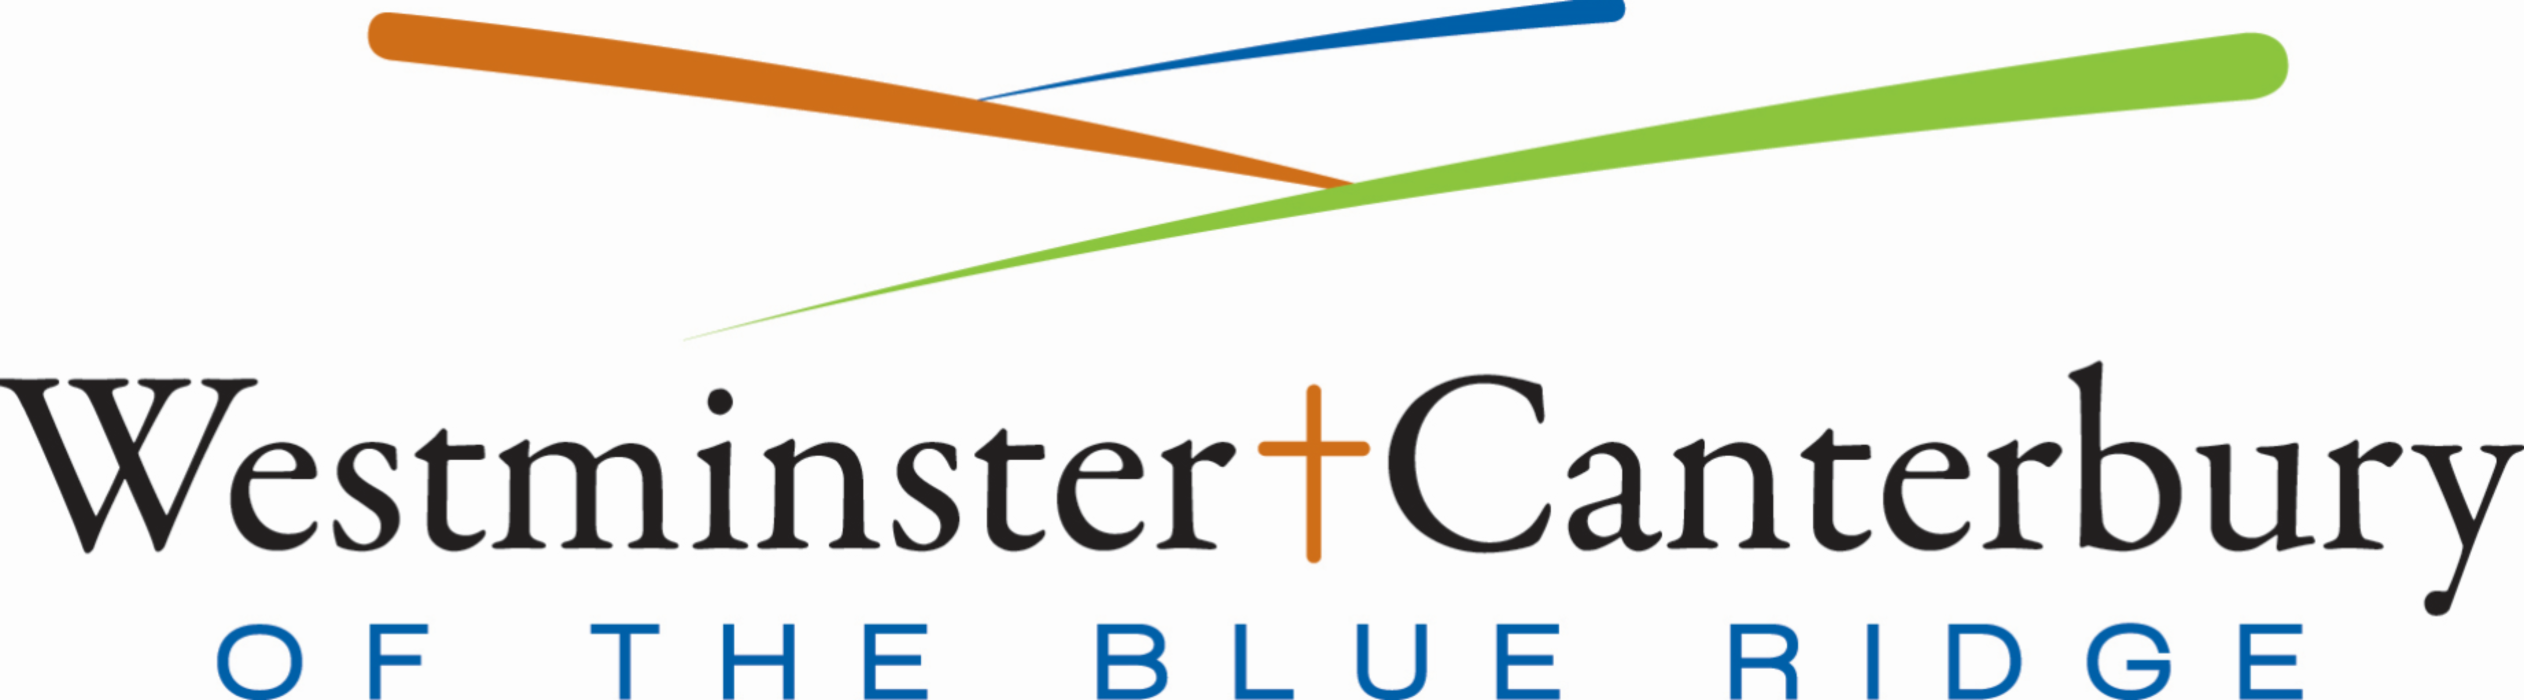 Westminster-Canterbury of the Blue Ridge logo